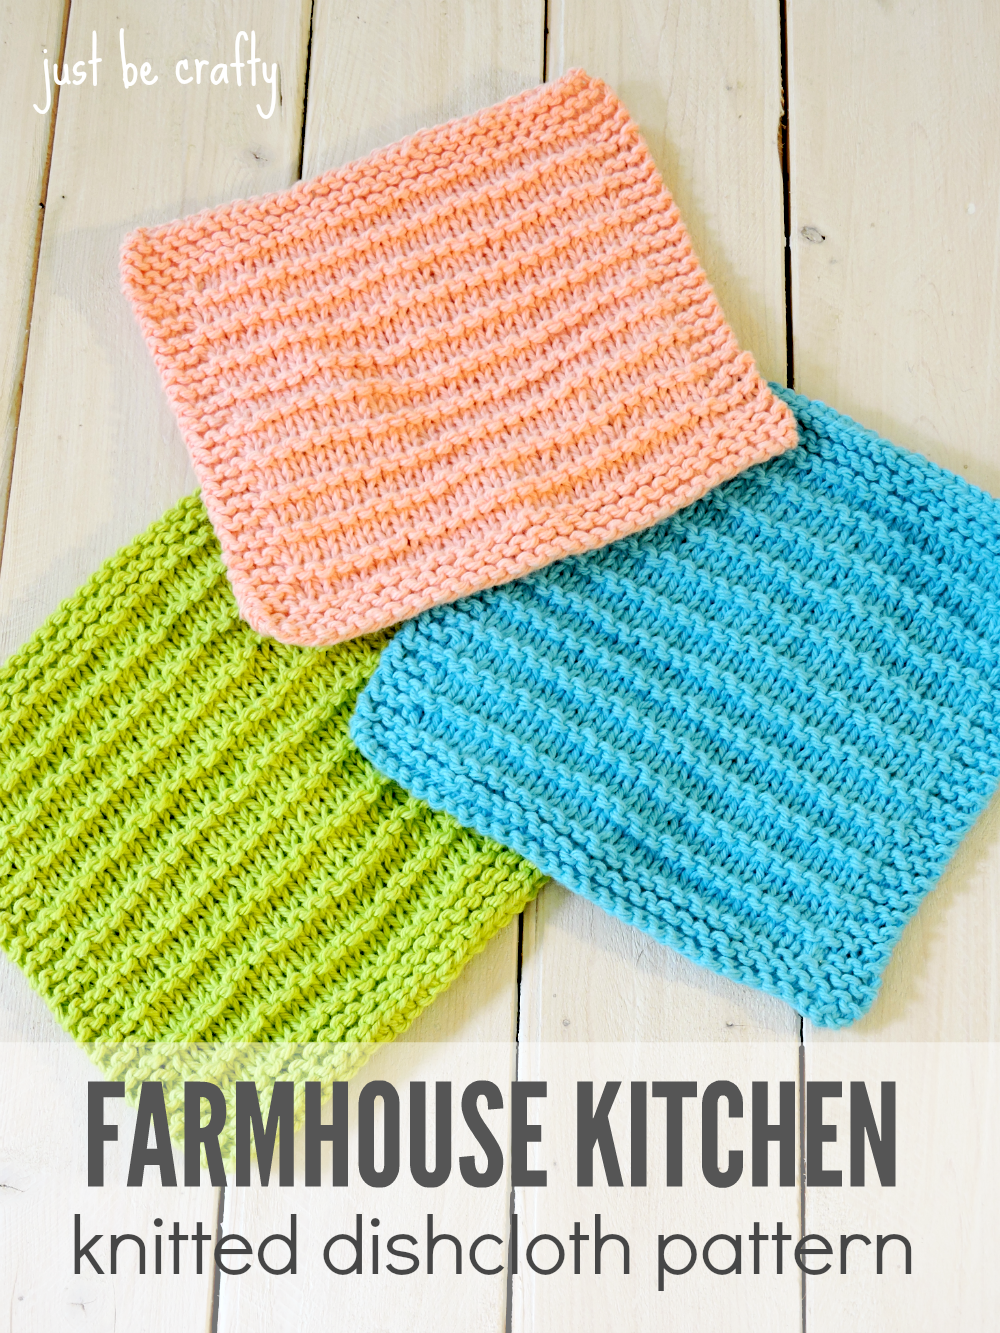 Farmhouse Kitchen Knitted Dishcloths | Pinterest | Knitted ...